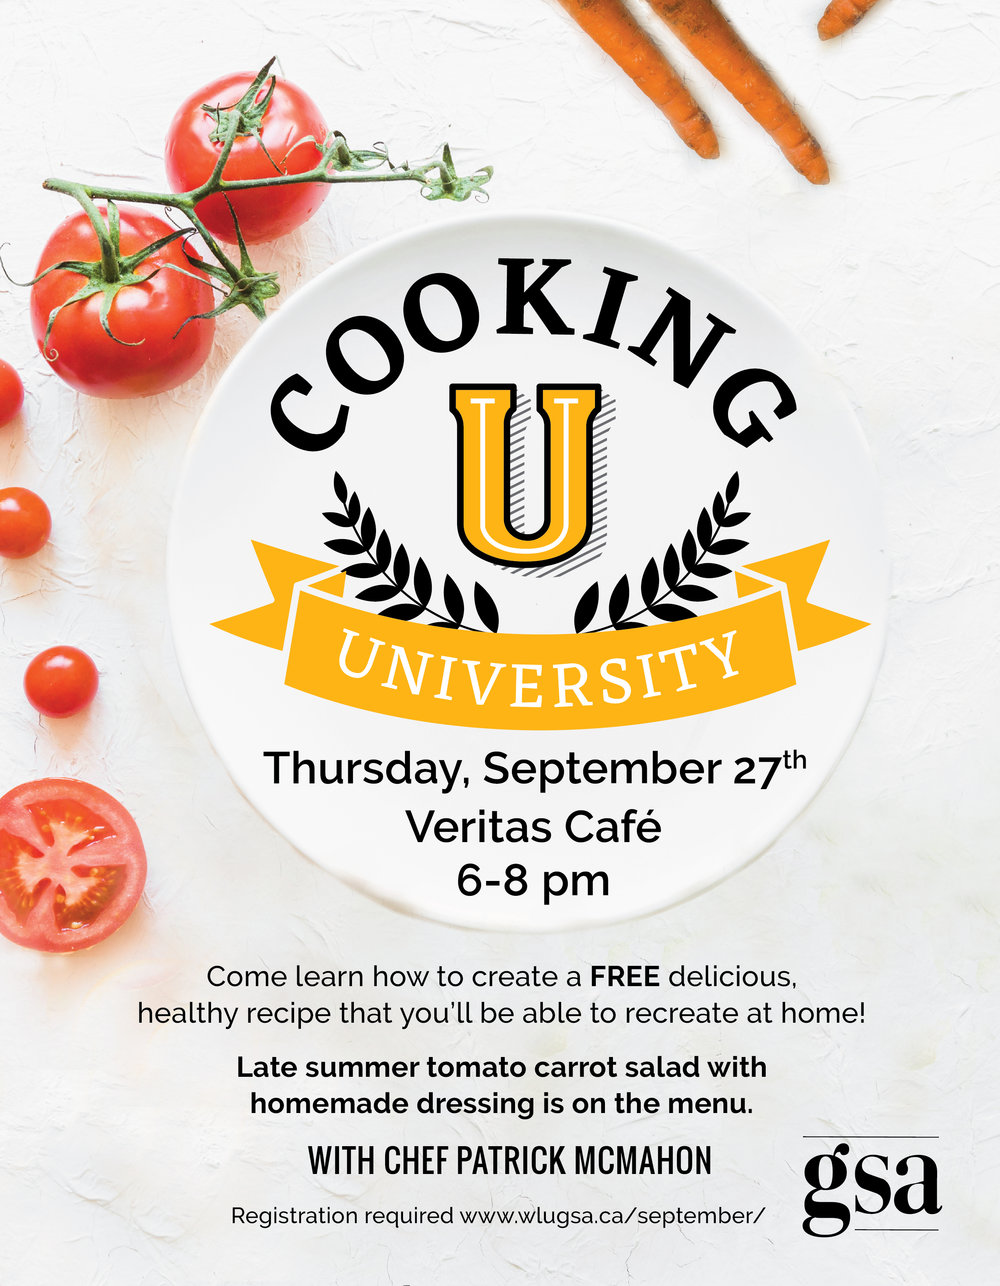 Cooking University Thursday, September 27th in Veritas Cafe, 6-8 pm. Late summer tomato carrot salad with homemade dressing is on the menu. Registration required.